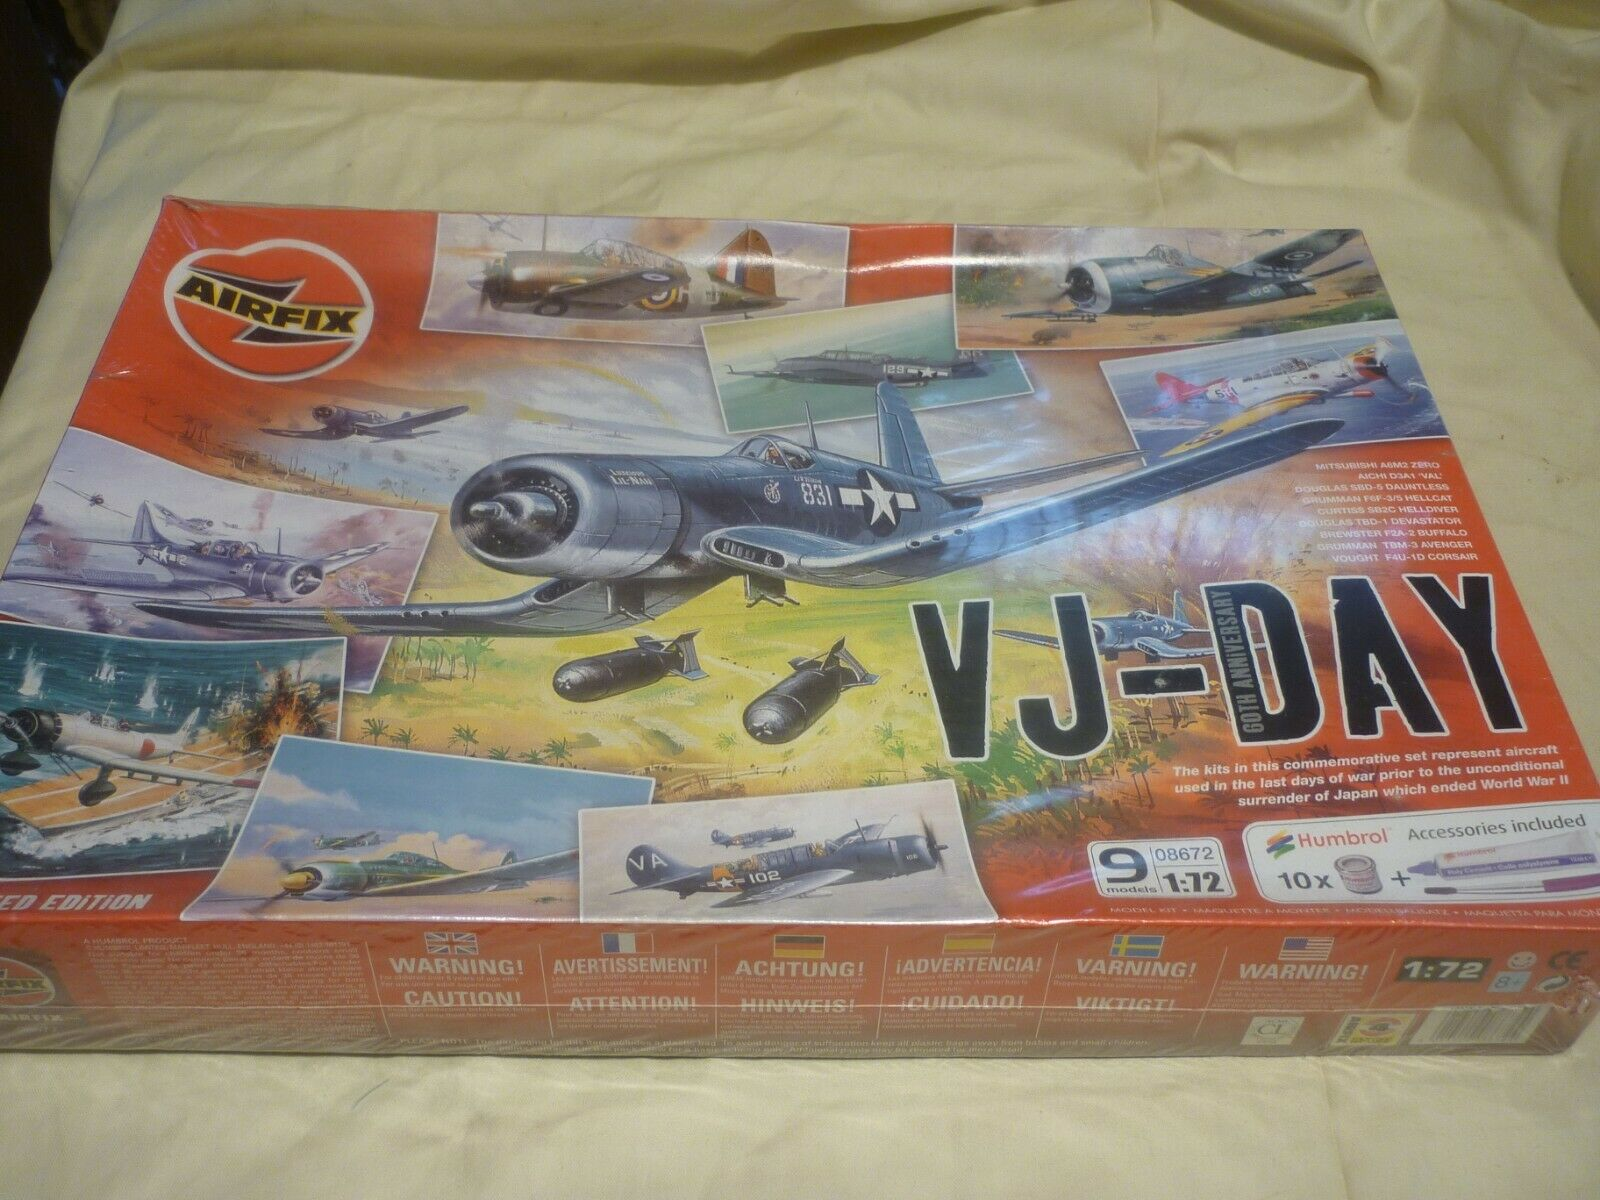 Airfix factory sealed   un made plastic kit of  VJ DAY box set of 5 models